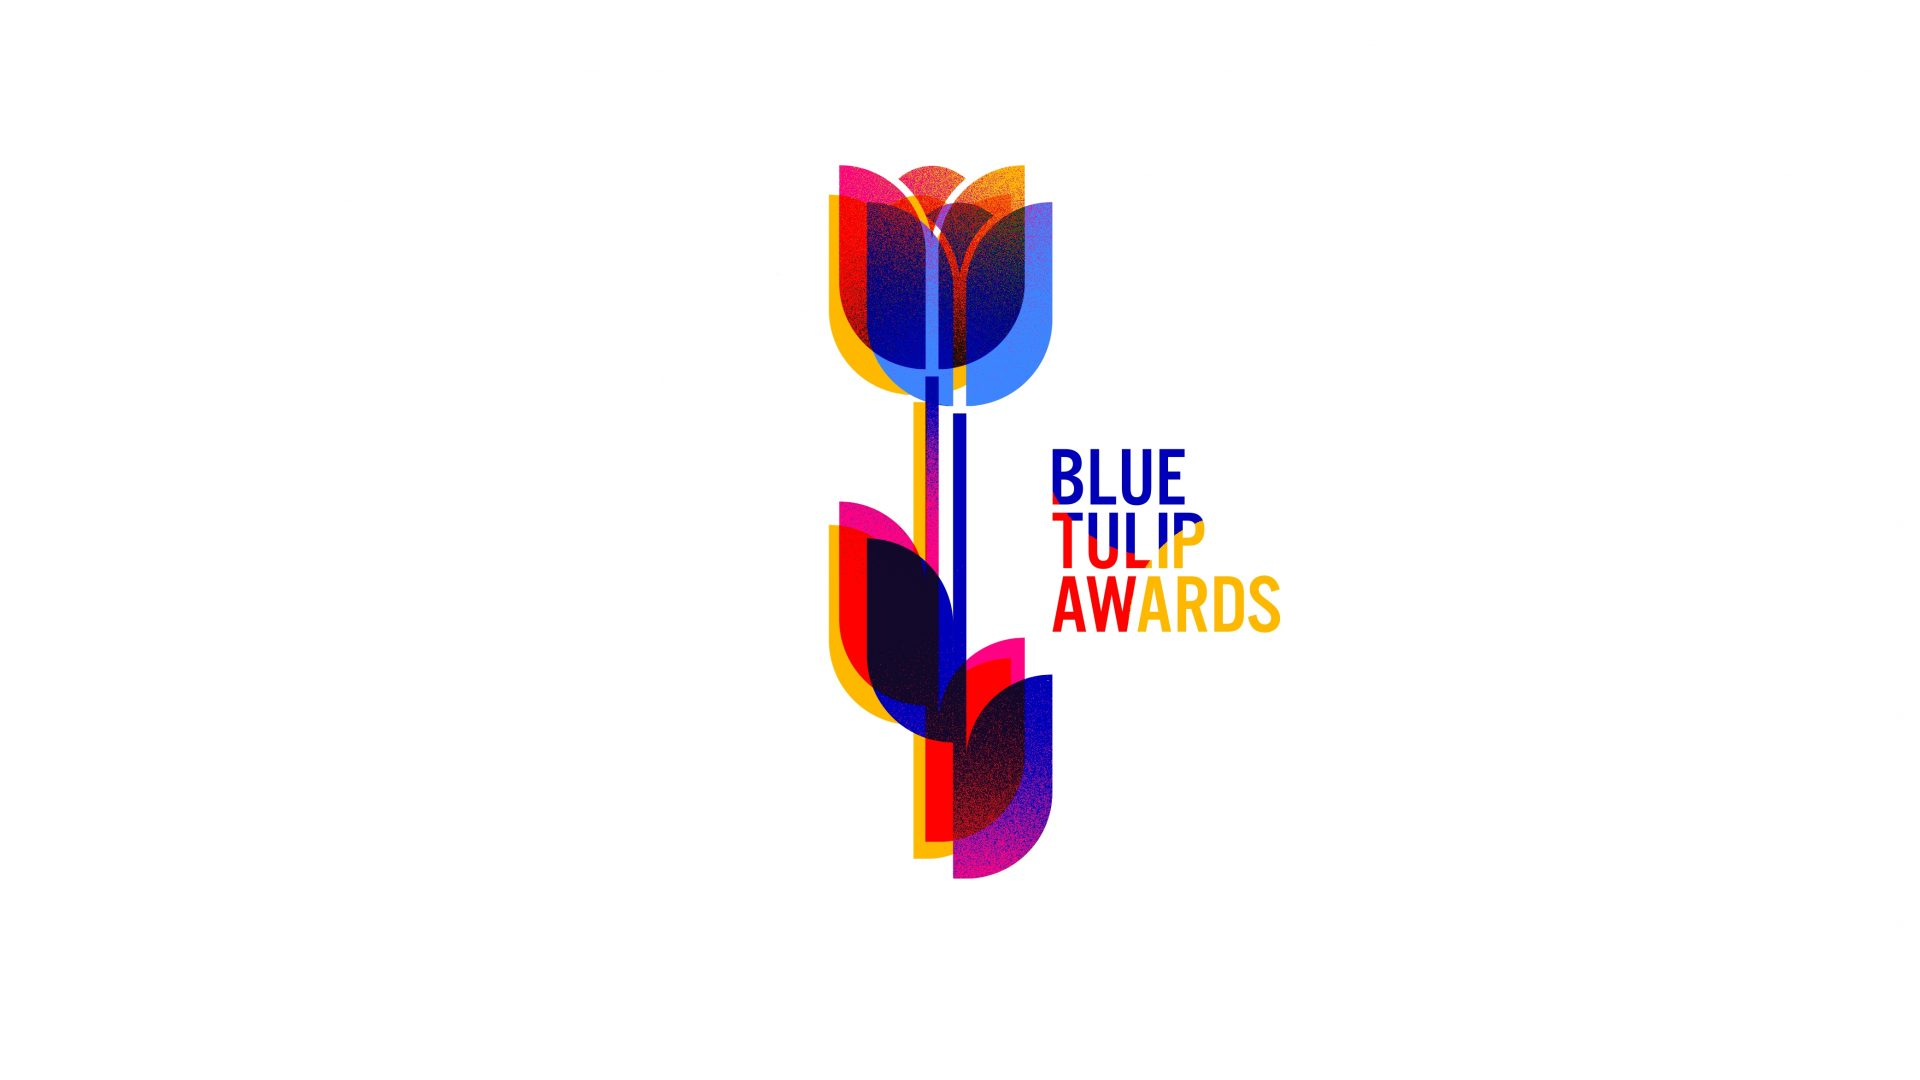 Bluetulipawards Pack Corelogos 9